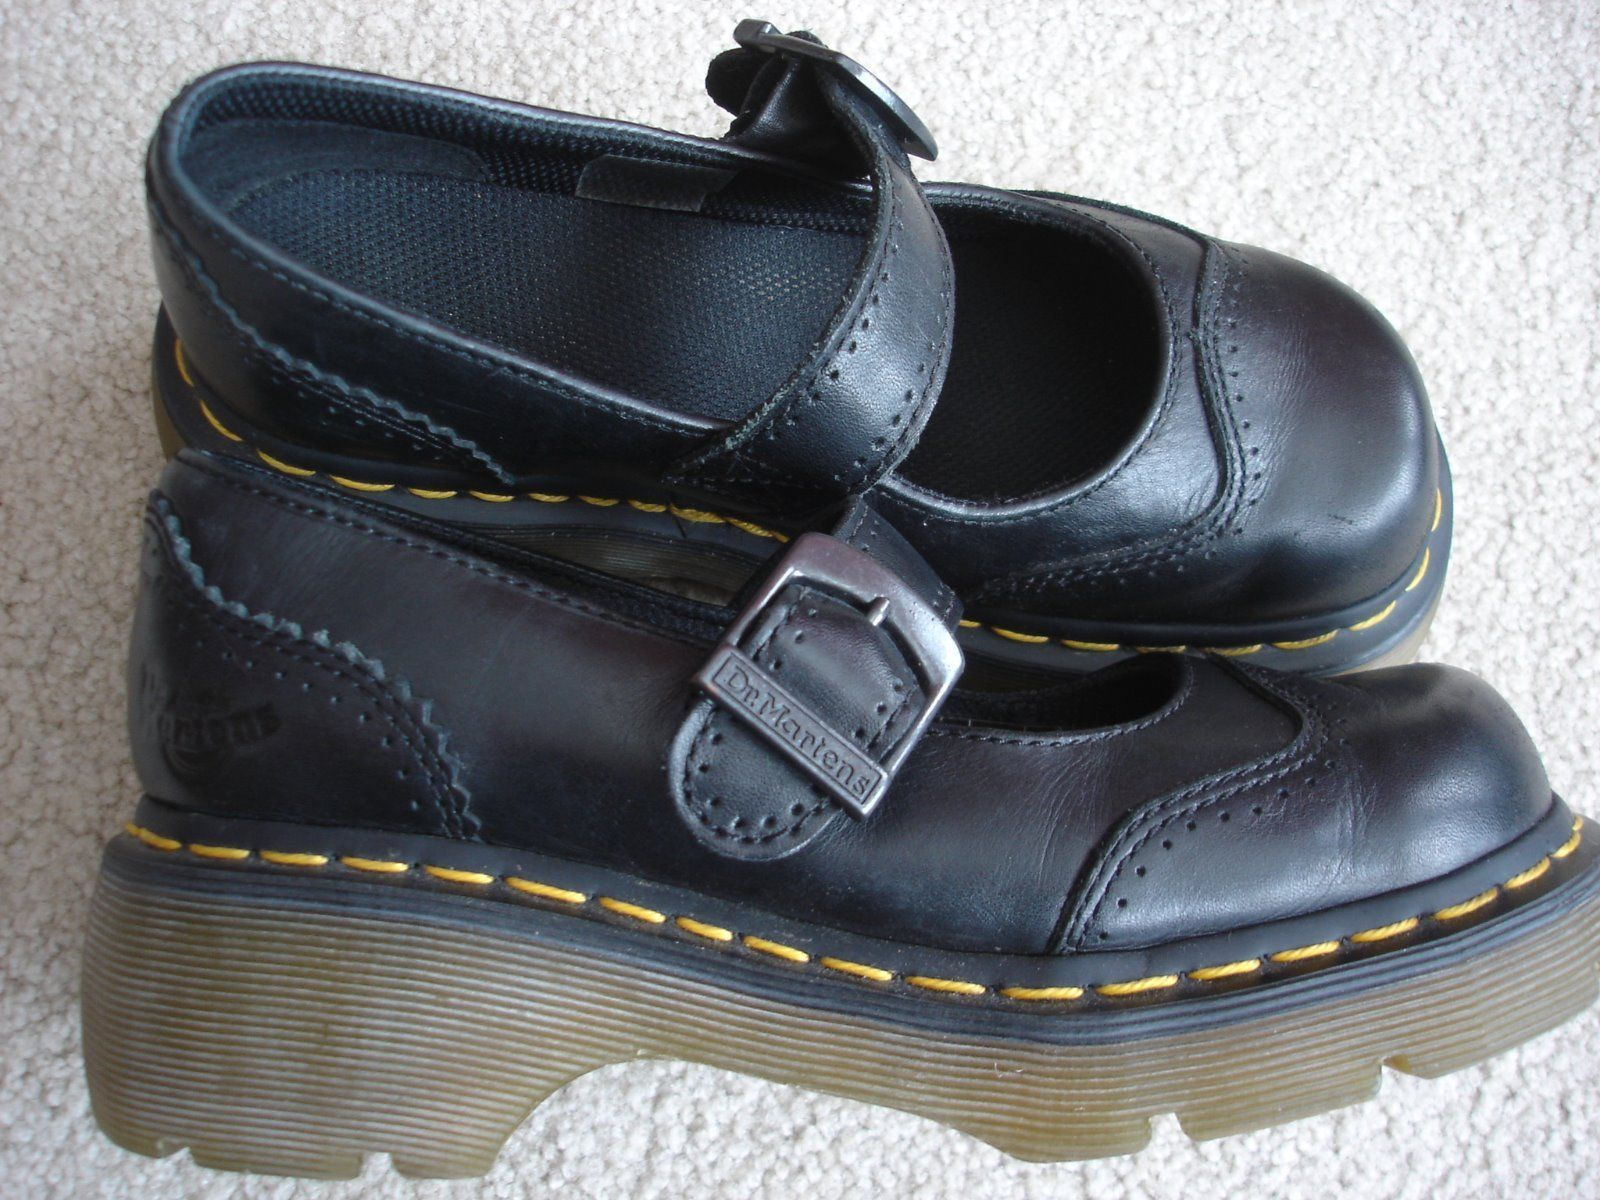 Dr Martens 8065 Mary Jane Twin Bar Patent Leather Shoes *Size 2.5 UK* BNIB